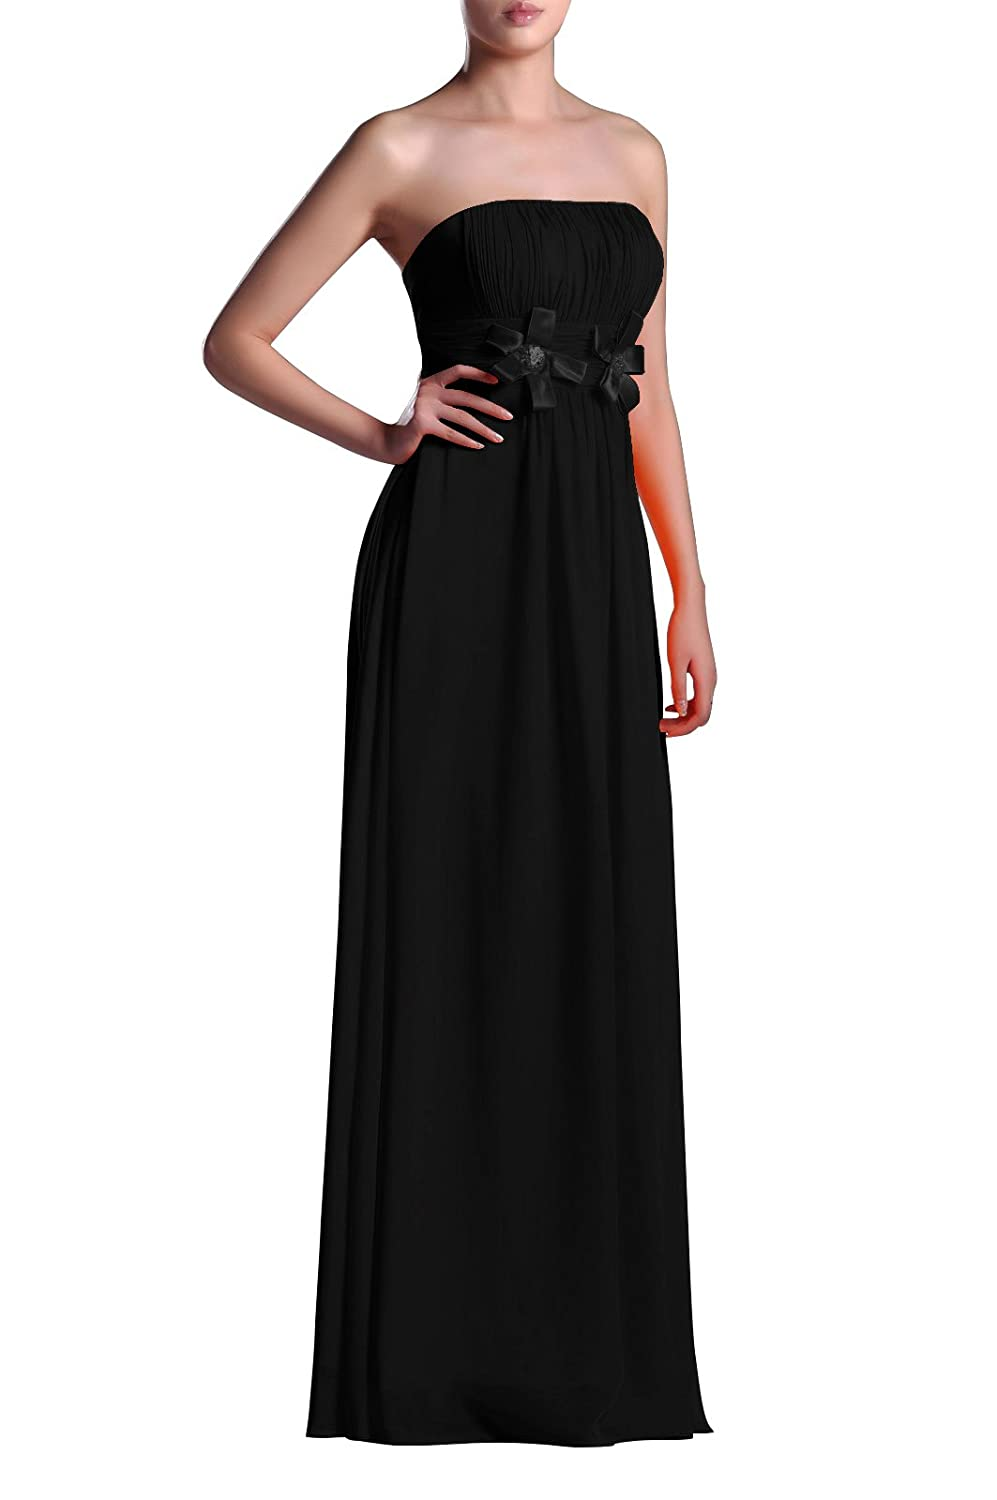 7c329db5209 Top 10 wholesale A Line Bridesmaid Dresses - Chinabrands.com